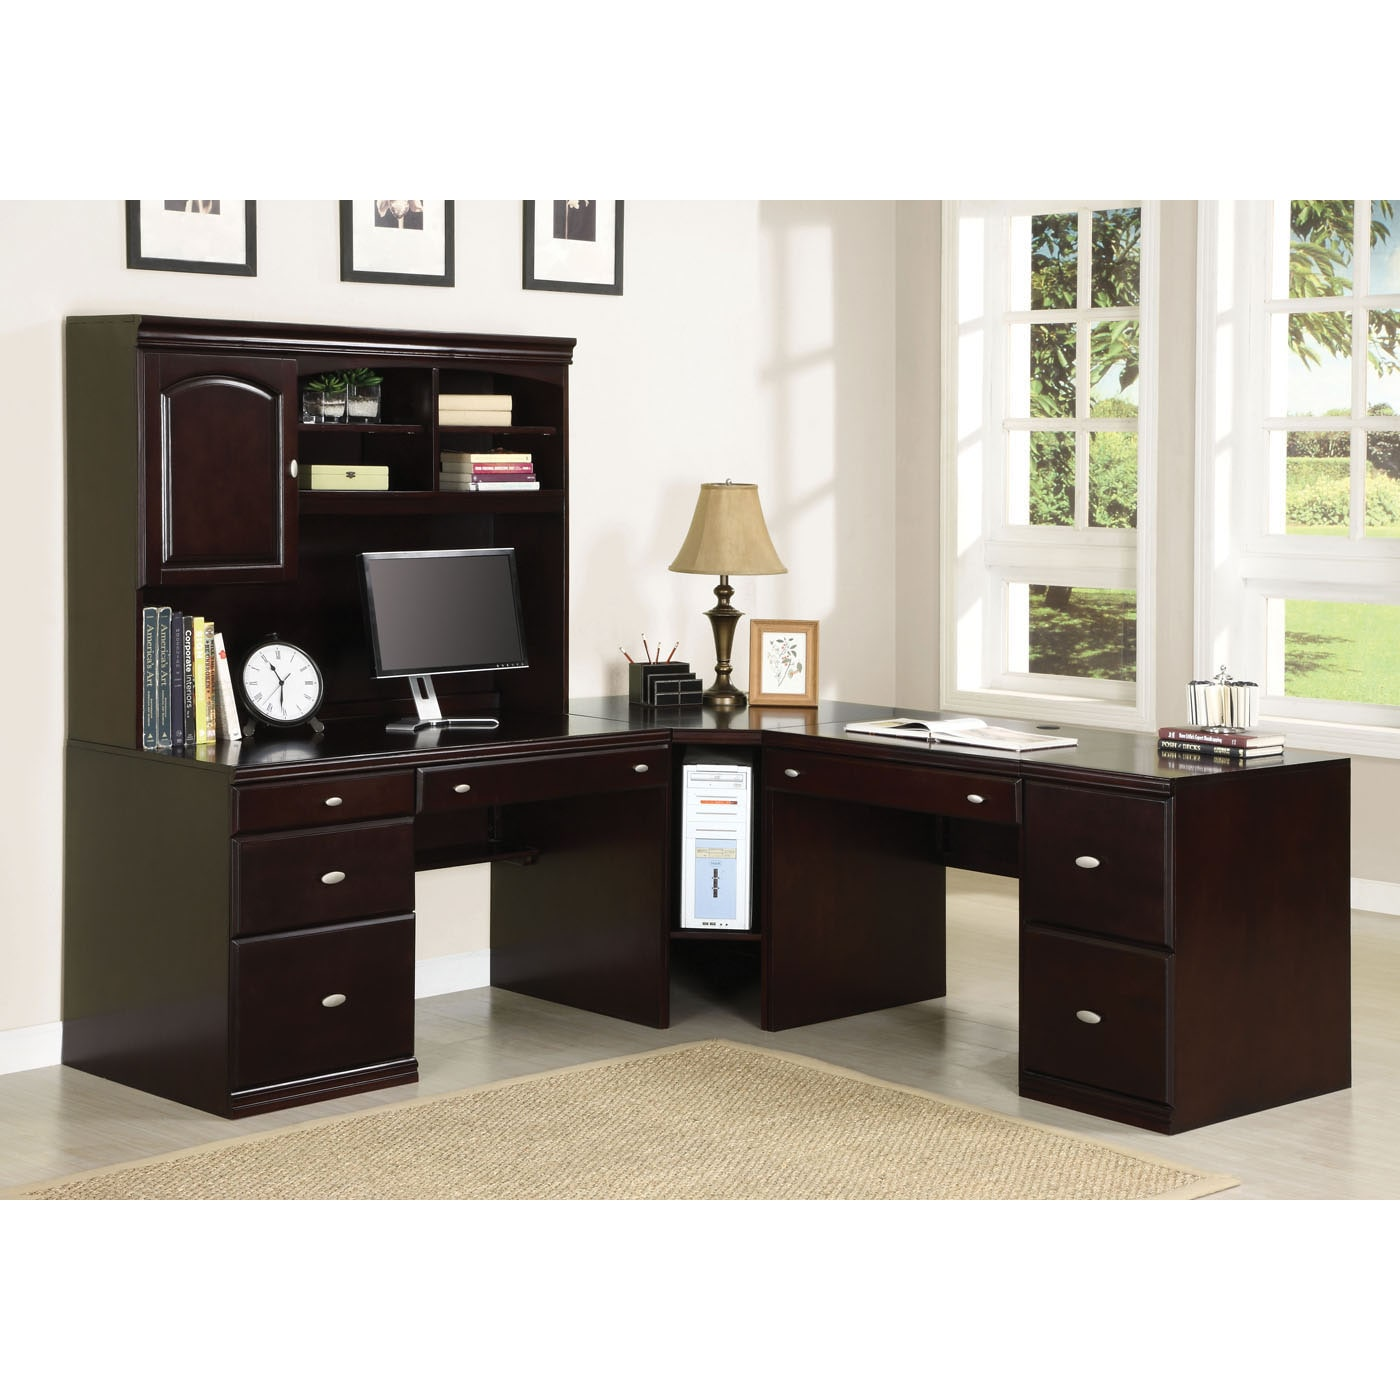 office desks corner corner home office corner cape espresso wood office desk amusing corner office desk elegant